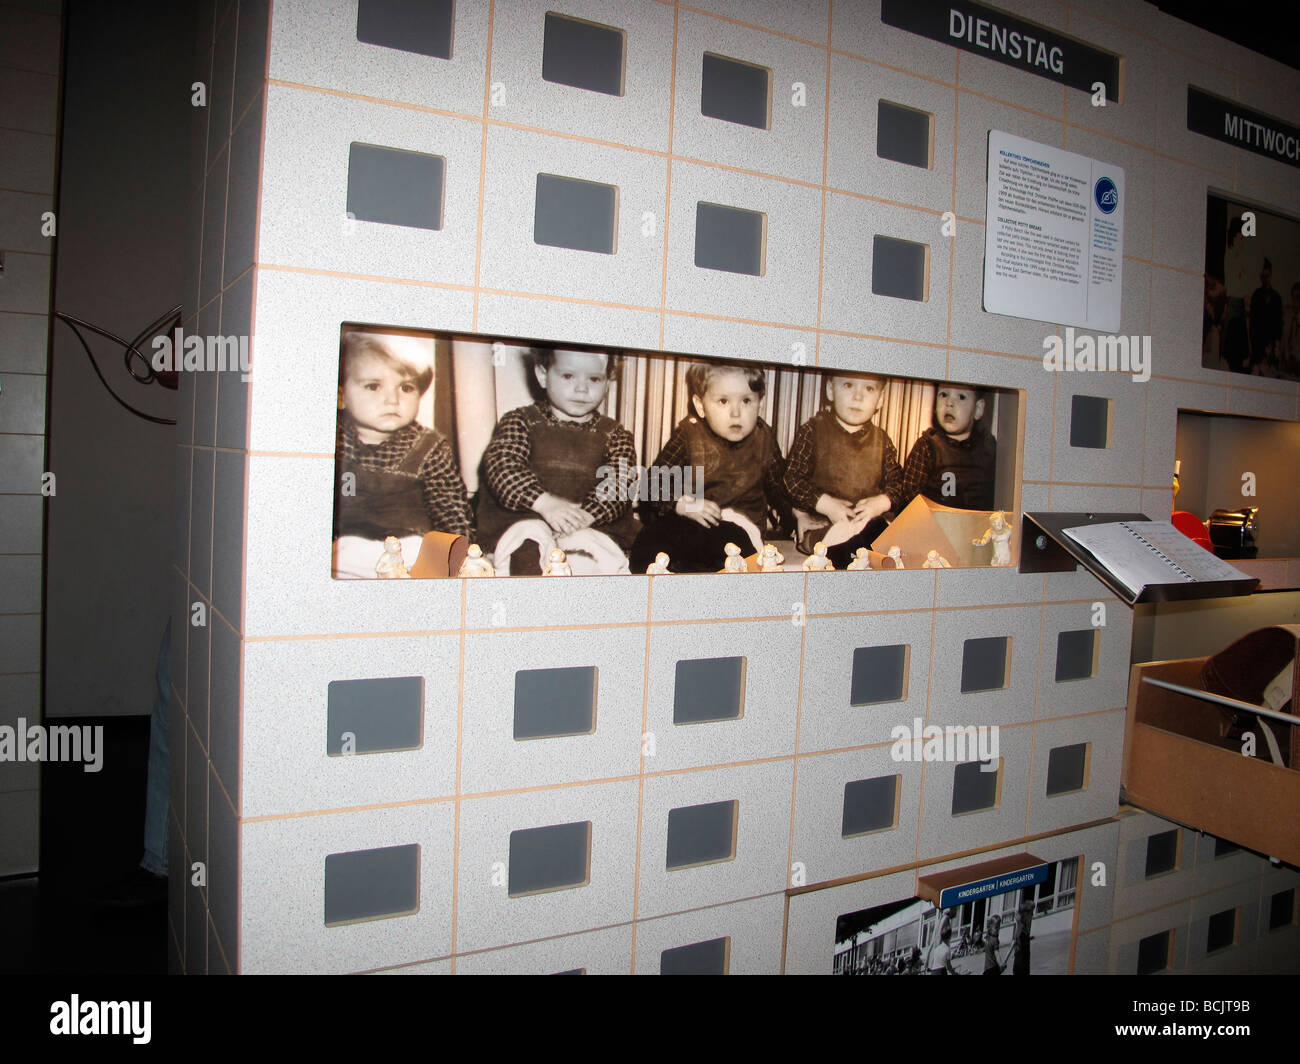 DDR museum at canal Spree in Berlin Germany May 09 - Stock Image